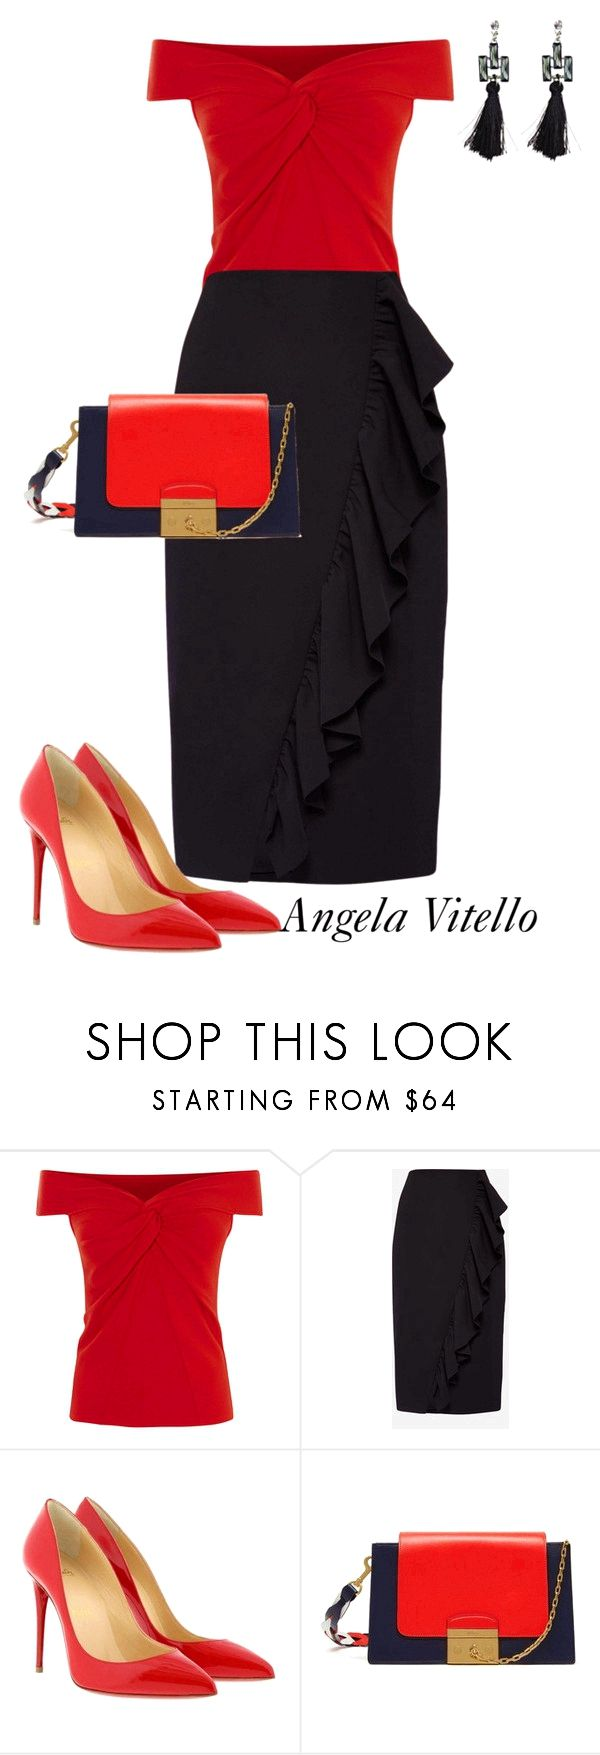 Untitled #995 by angela-vitello on Polyvore featuring Ted Baker, Christian Louboutin and Mulberry being unfaithful limited offer,no tax and free shipping.#shoes #womenstyle #heels #womenheels #womenshoes  #fashionheels #redheels #louboutin #louboutinheels #christanlouboutinshoes #louboutinworld